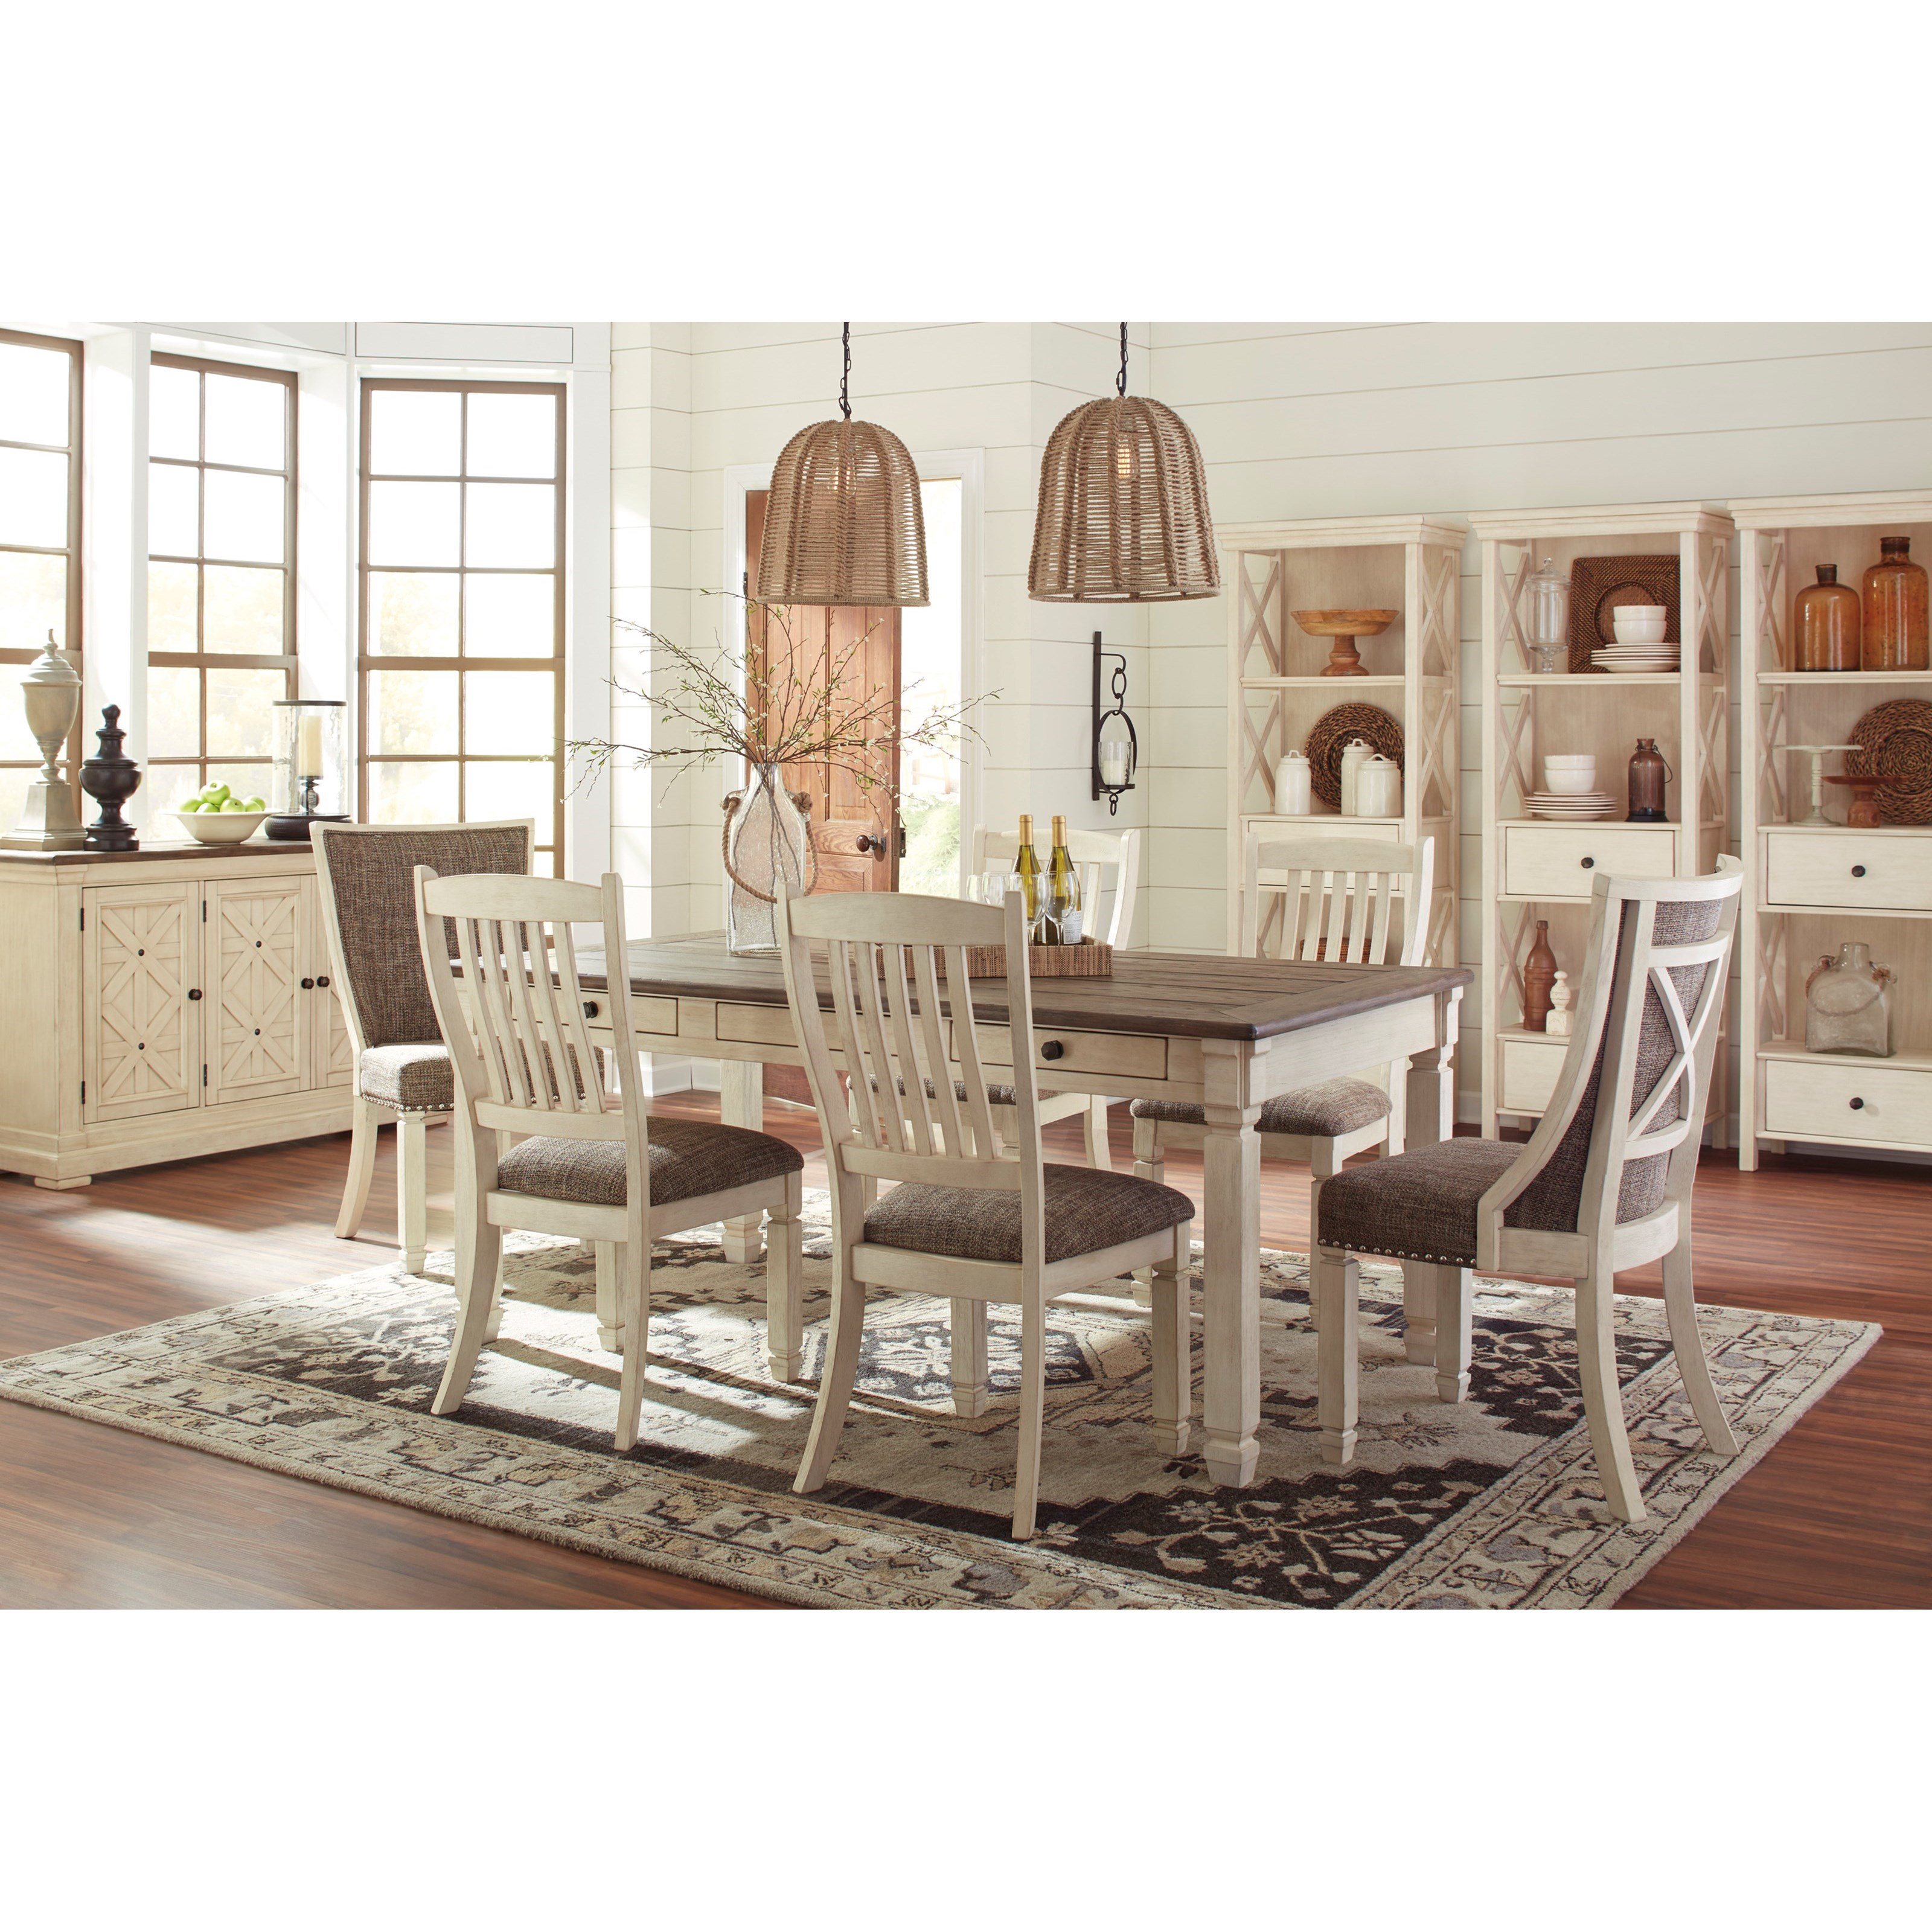 Ashley Furniture Outlet Wausau: Signature Design By Ashley Bolanburg D647-02 Relaxed